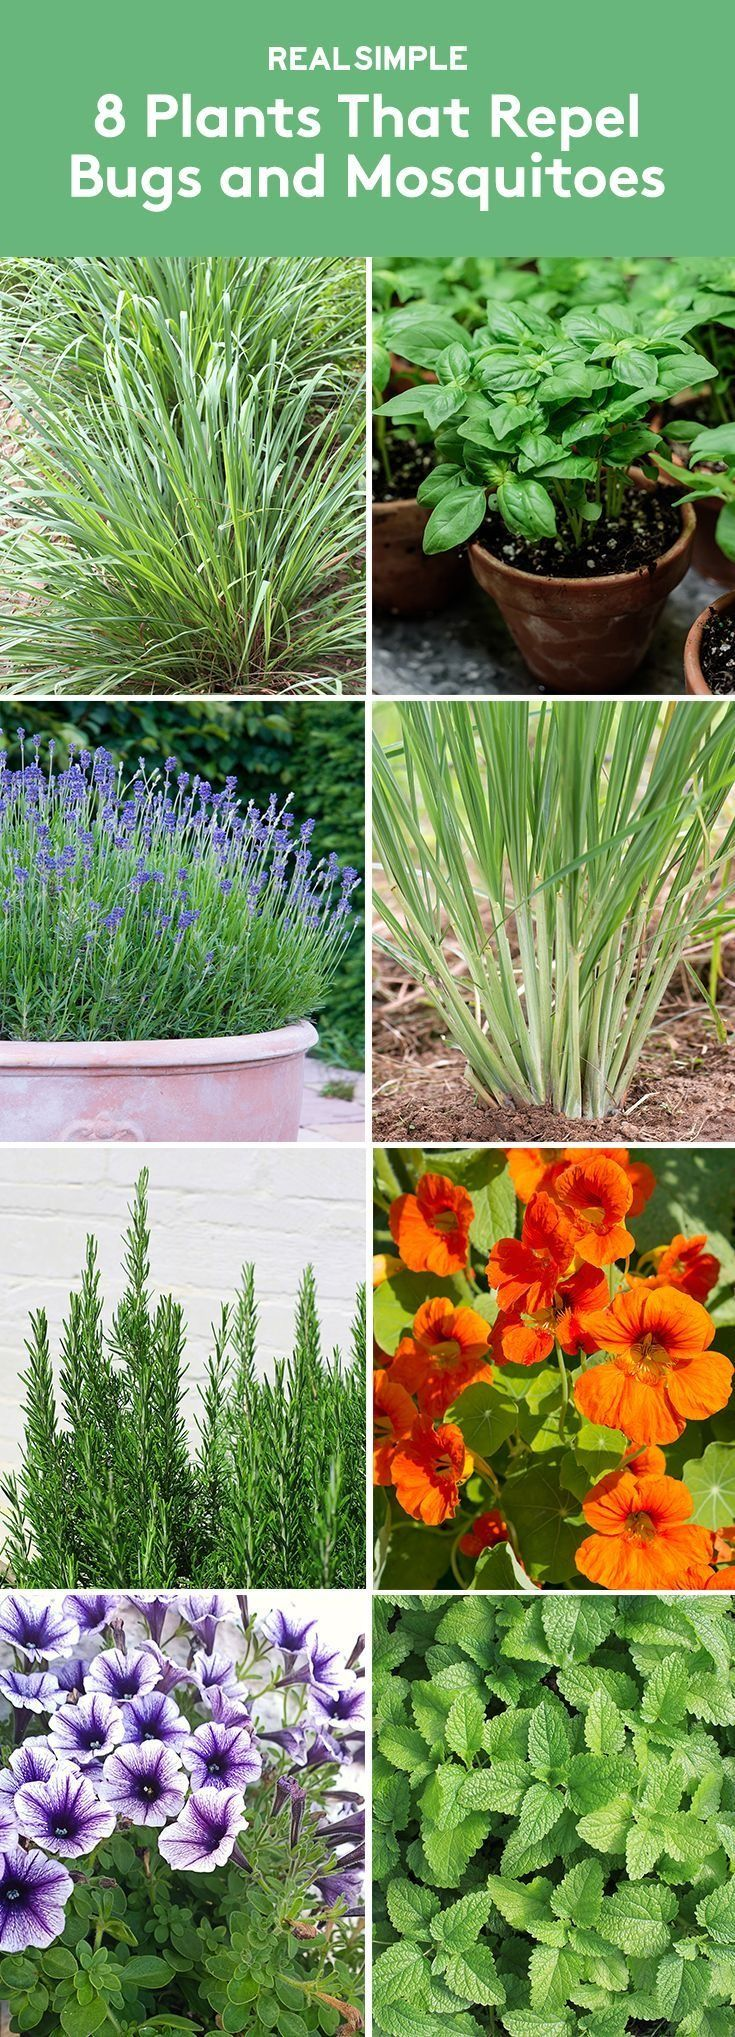 8 Plants That Repel Bugs And Mosquitoes With Images Plants